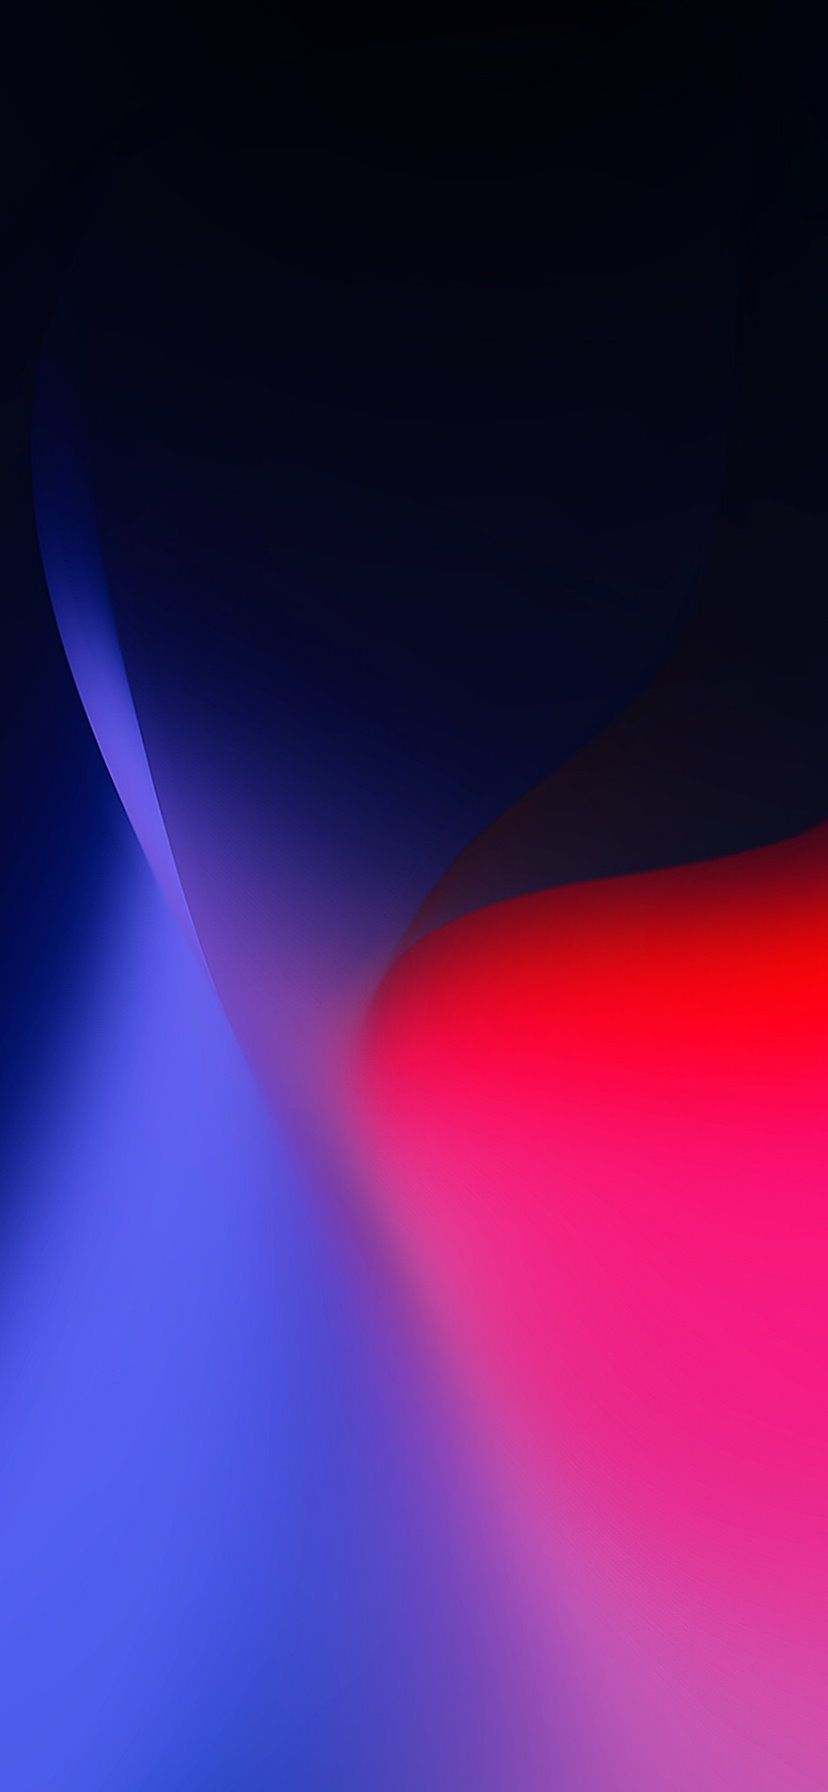 Wallpapers Iphone Xr Pack 1 Arts In 2019 Iphone Wallpaper Ios